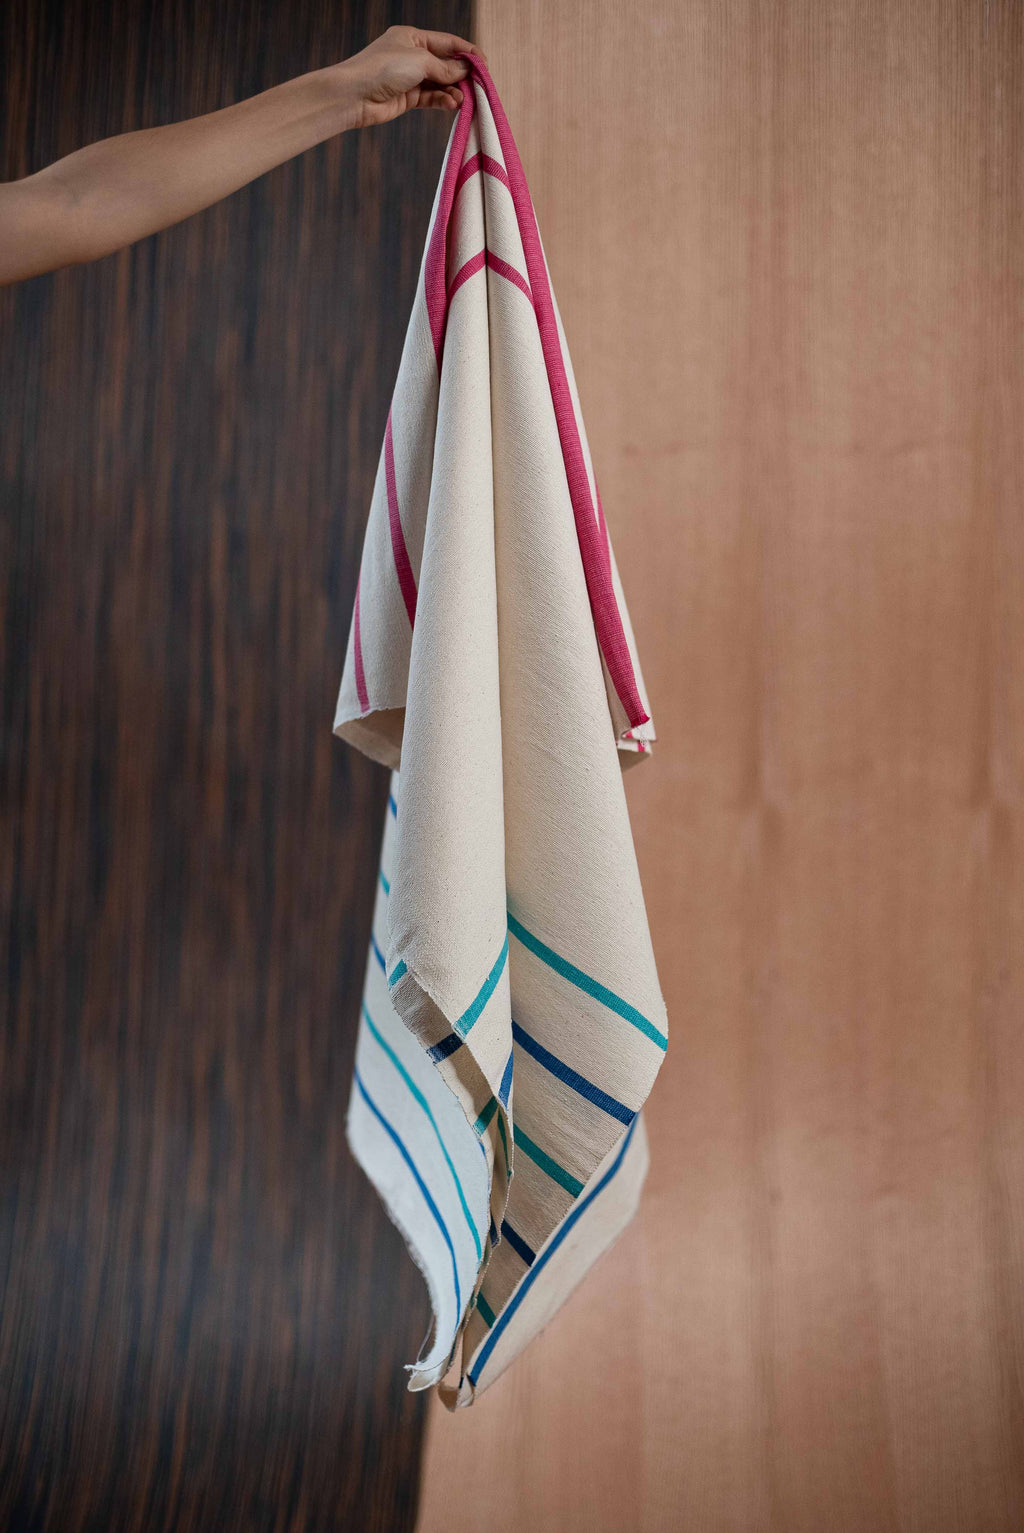 Blue pink towel - TOCO MADERA - Handcraft shoe from Mexico - Handmade shoe